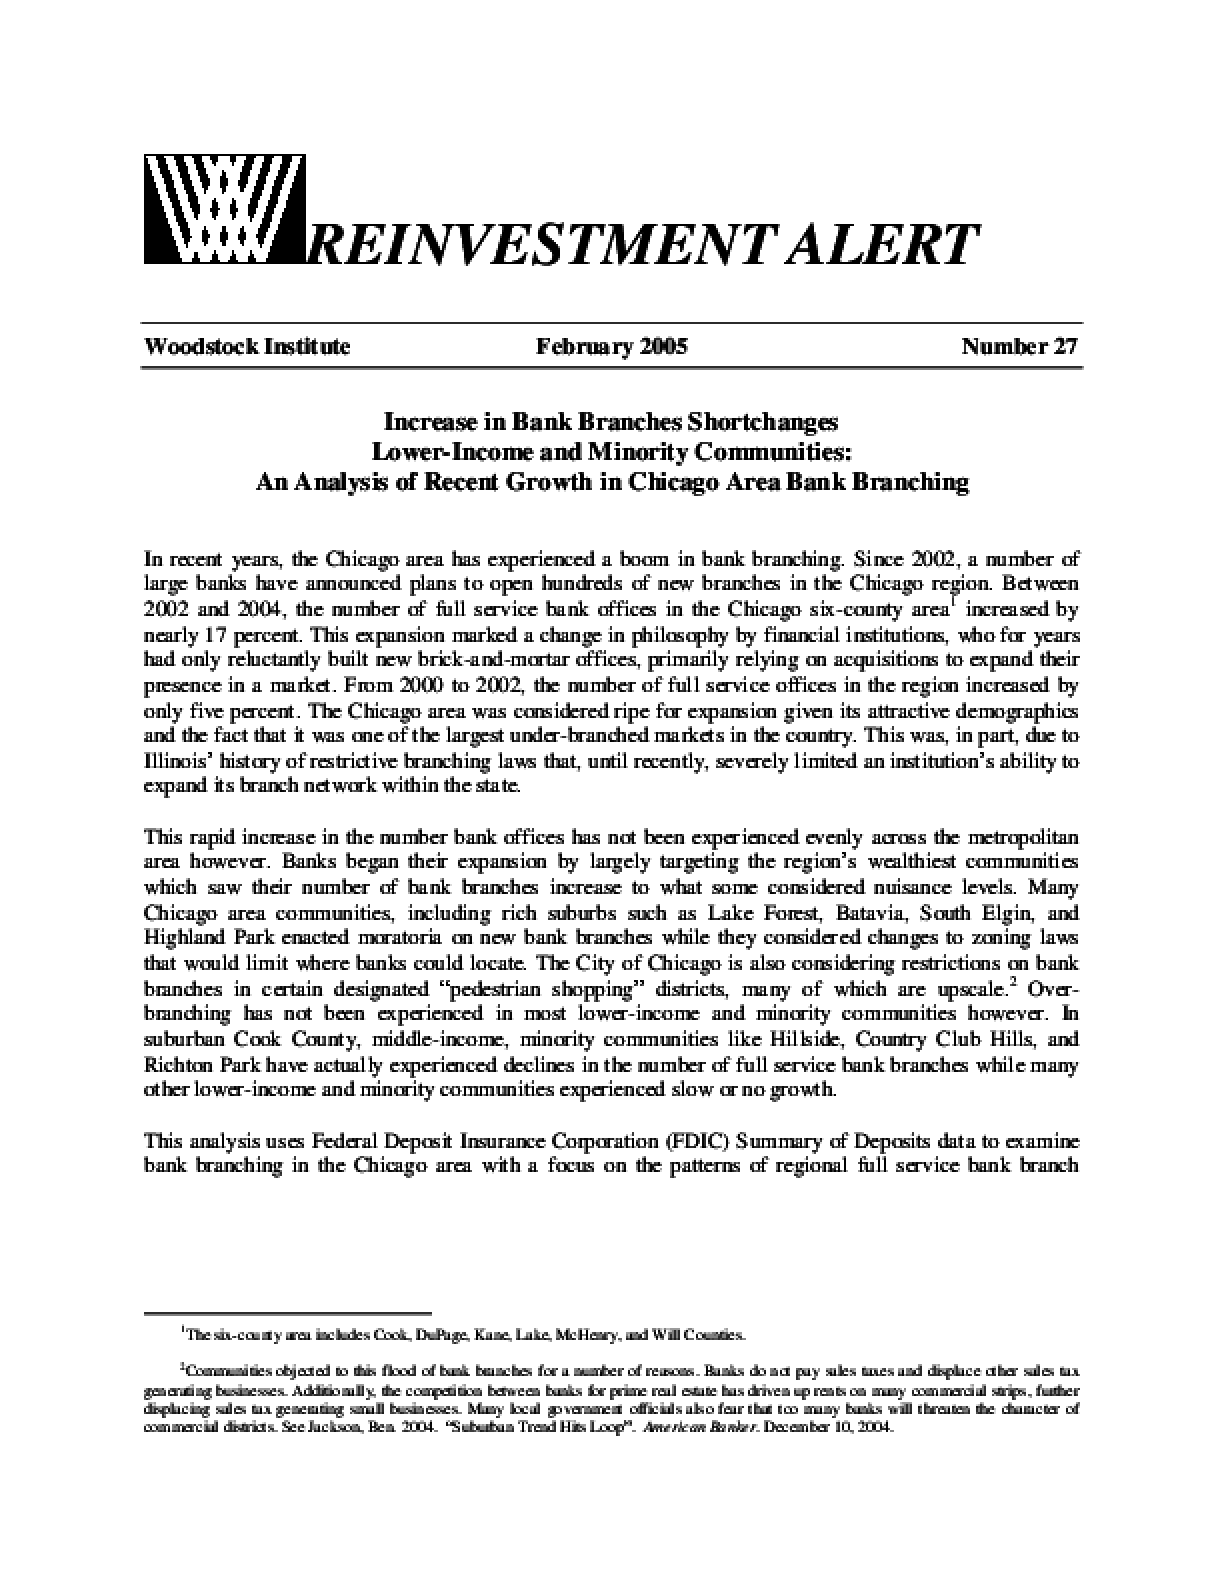 Reinvestment Alert 27 - Increase in Bank Branches Shortchanges Lower-Income and Minority Communities